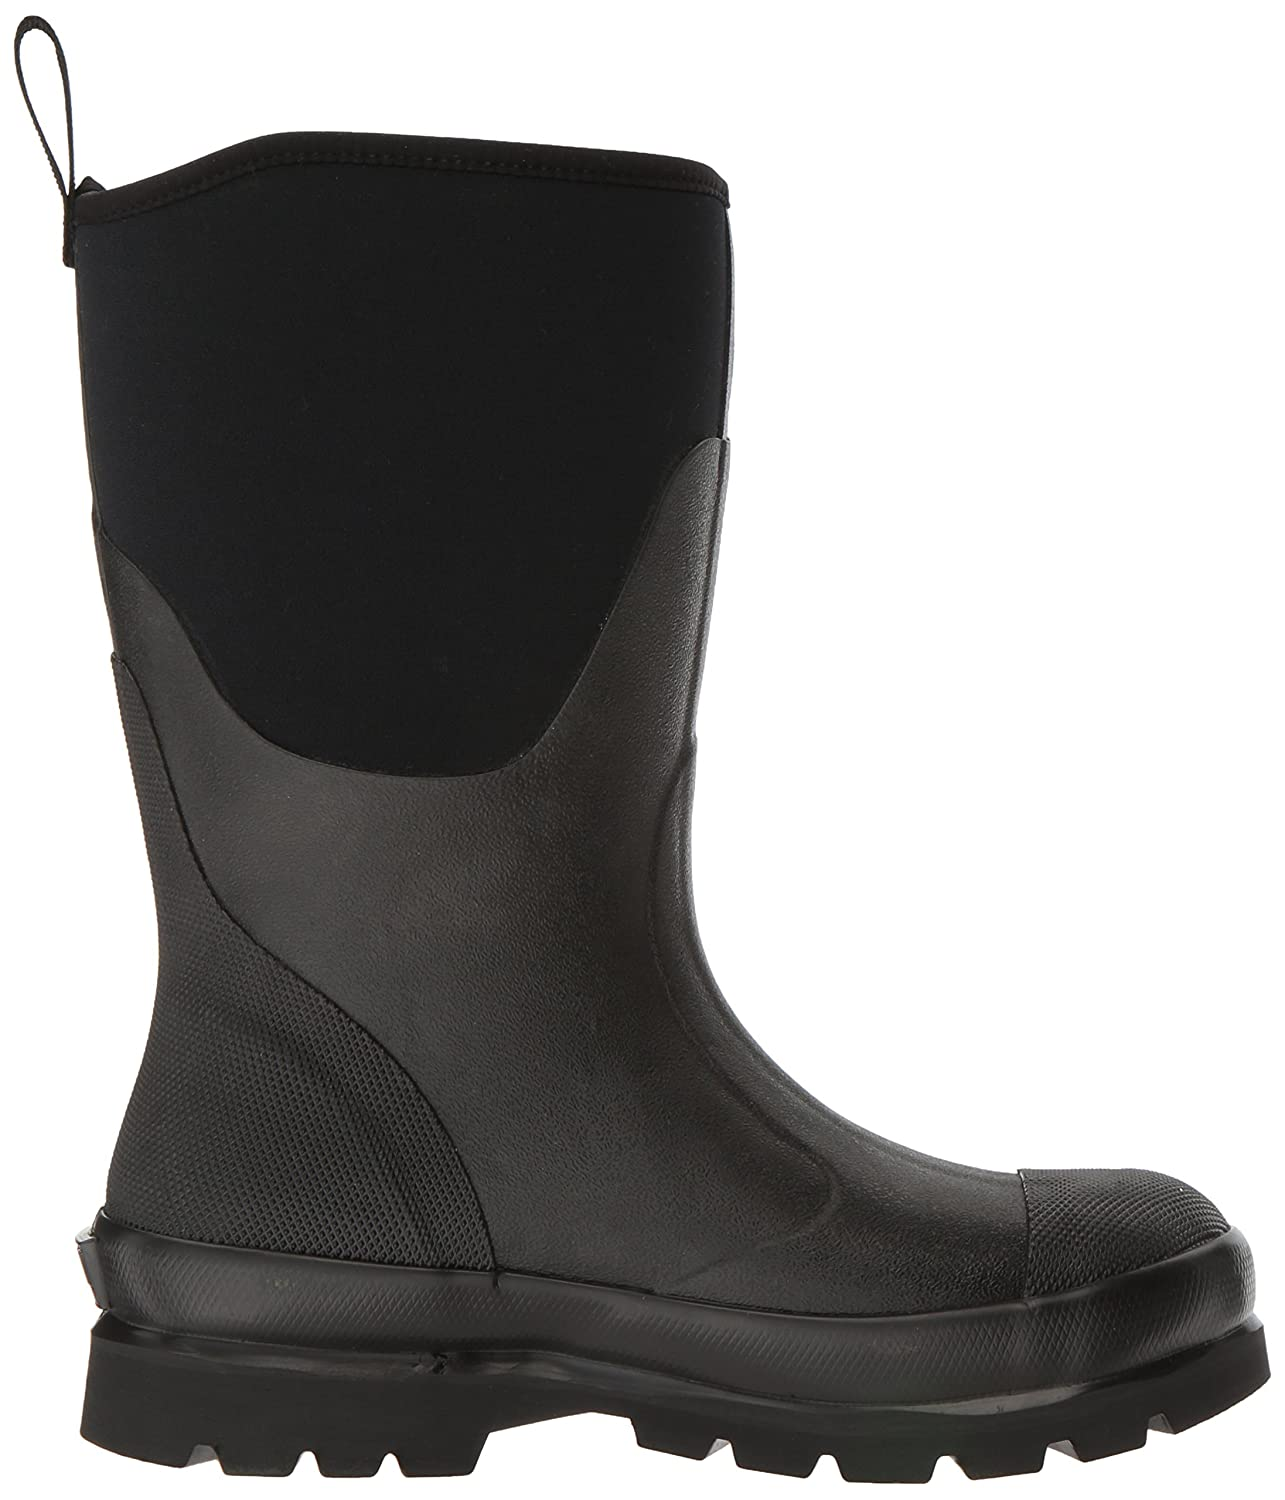 Muck Boot Women's Chore Mid Snow B06VWF8VHY 8 B(M) US|Black